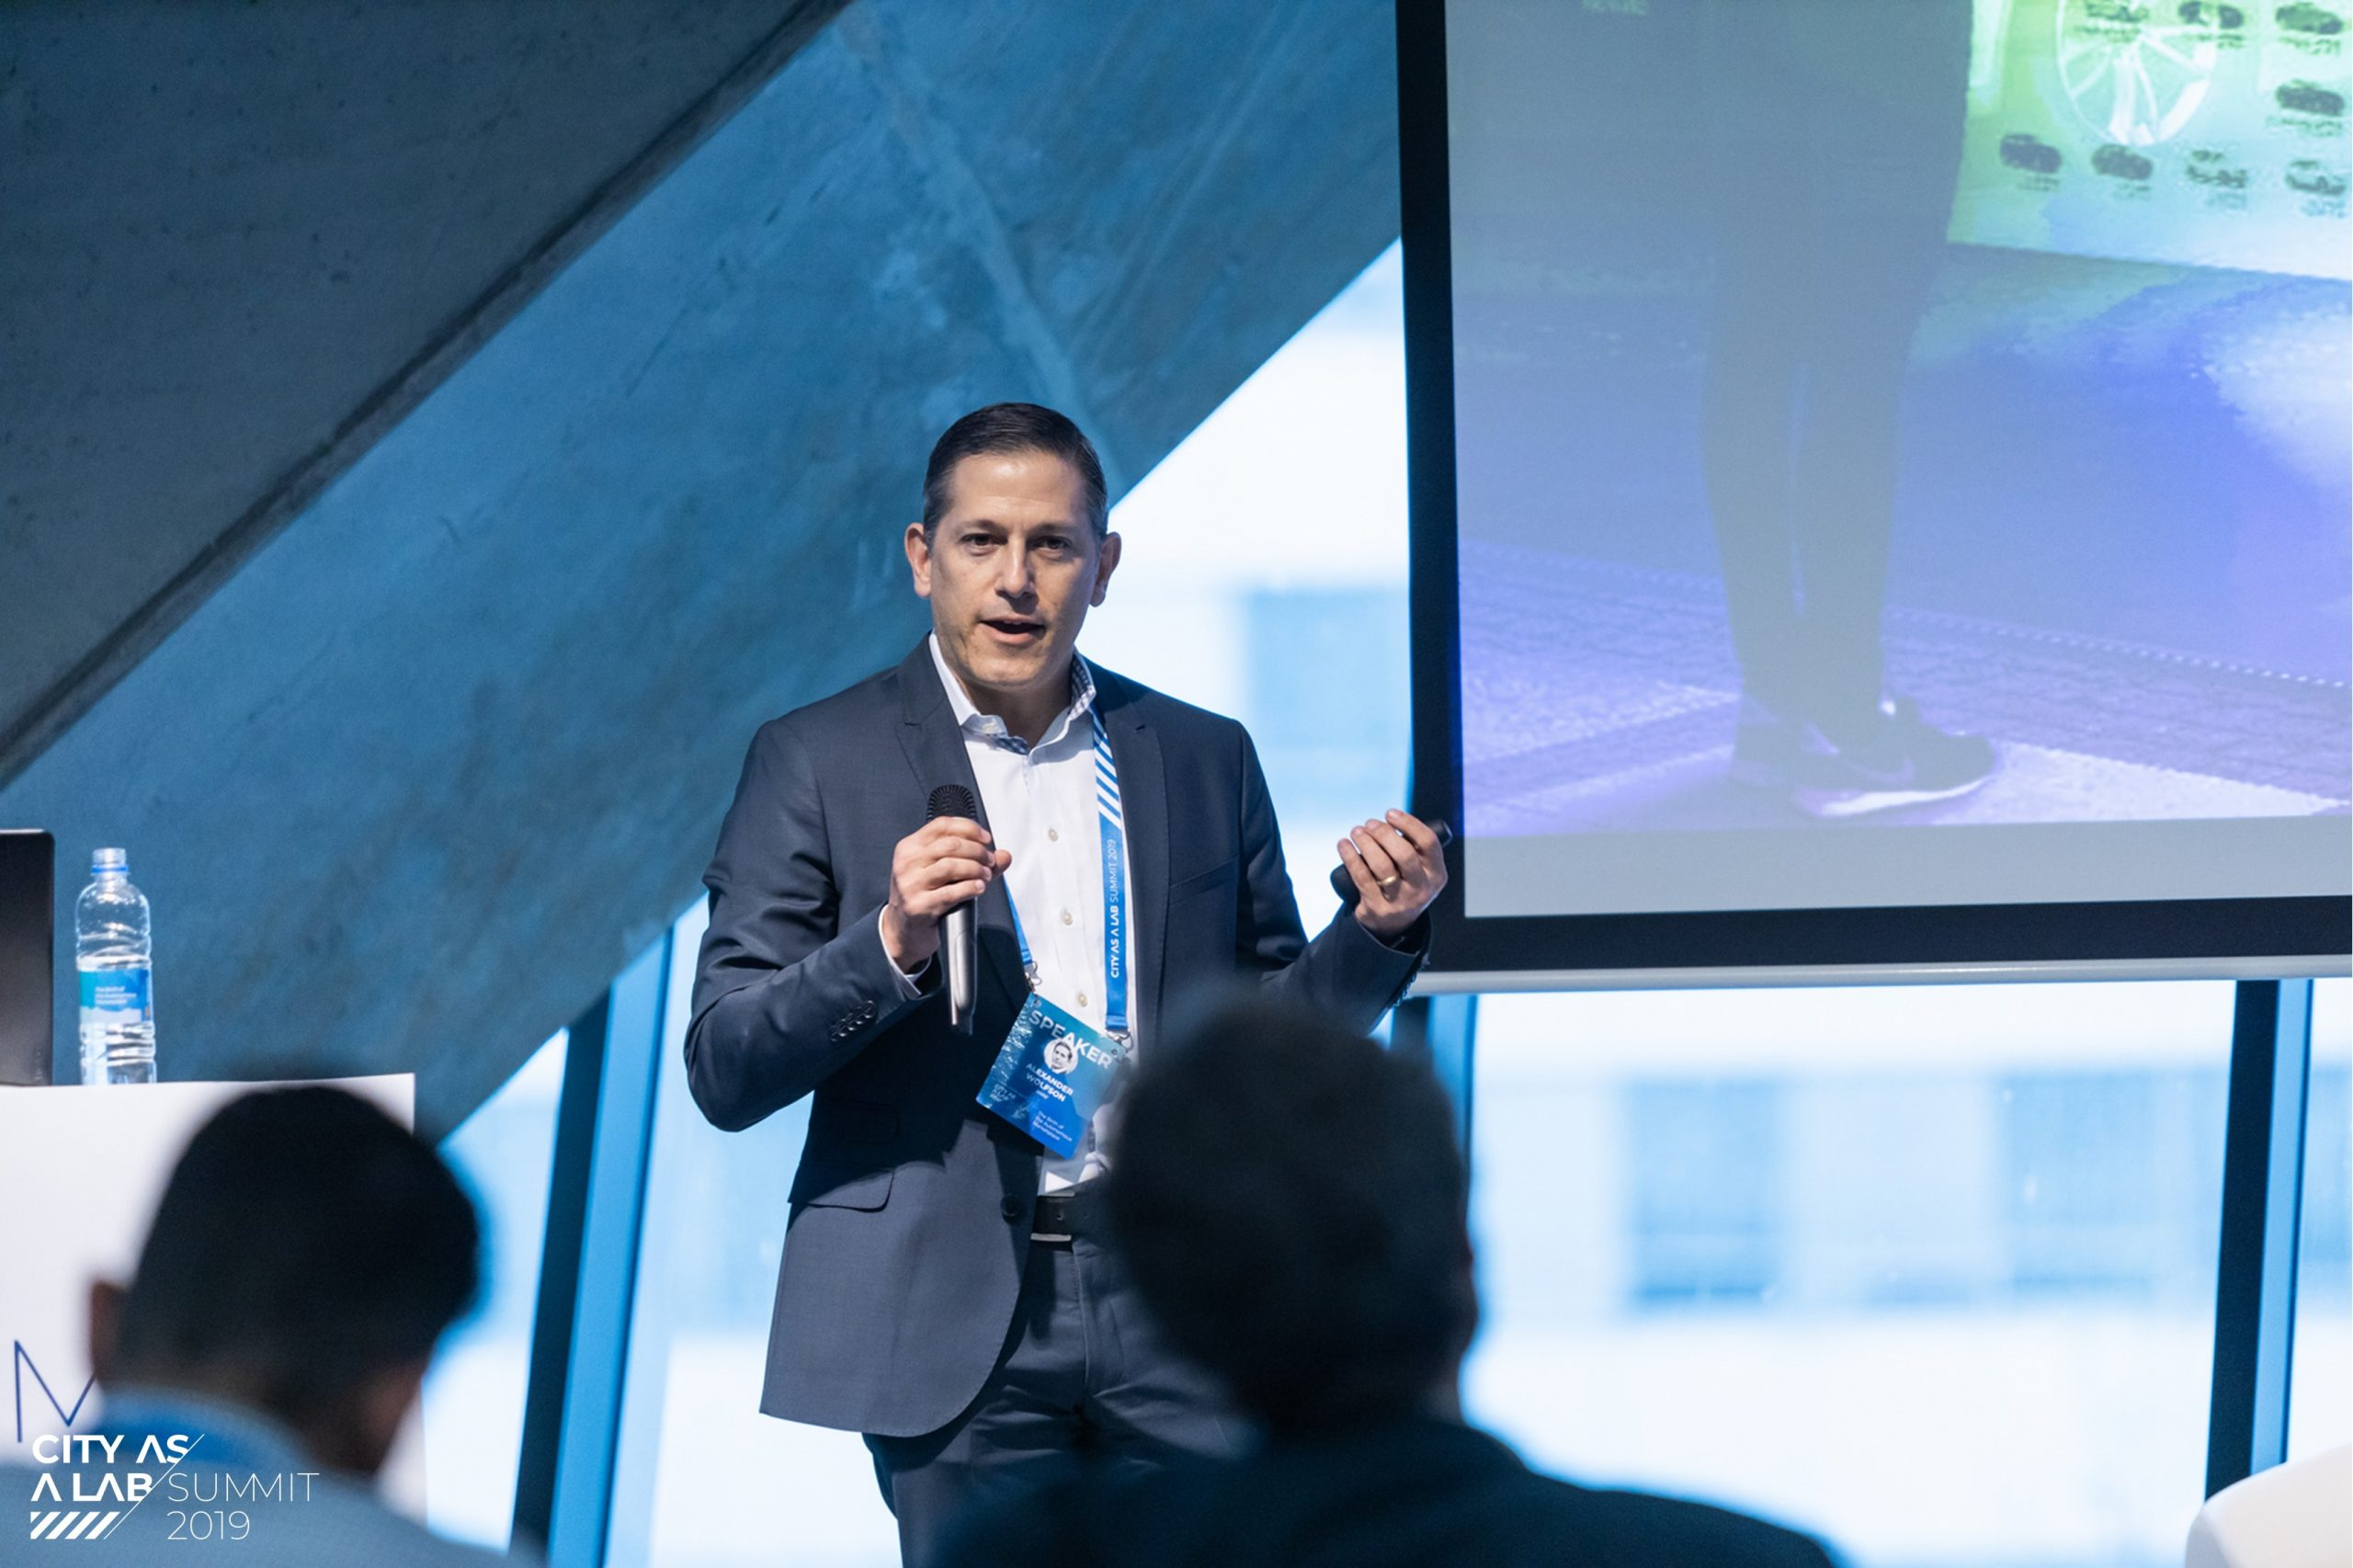 Alexander Wolfson, City as a Lab Summit 2019